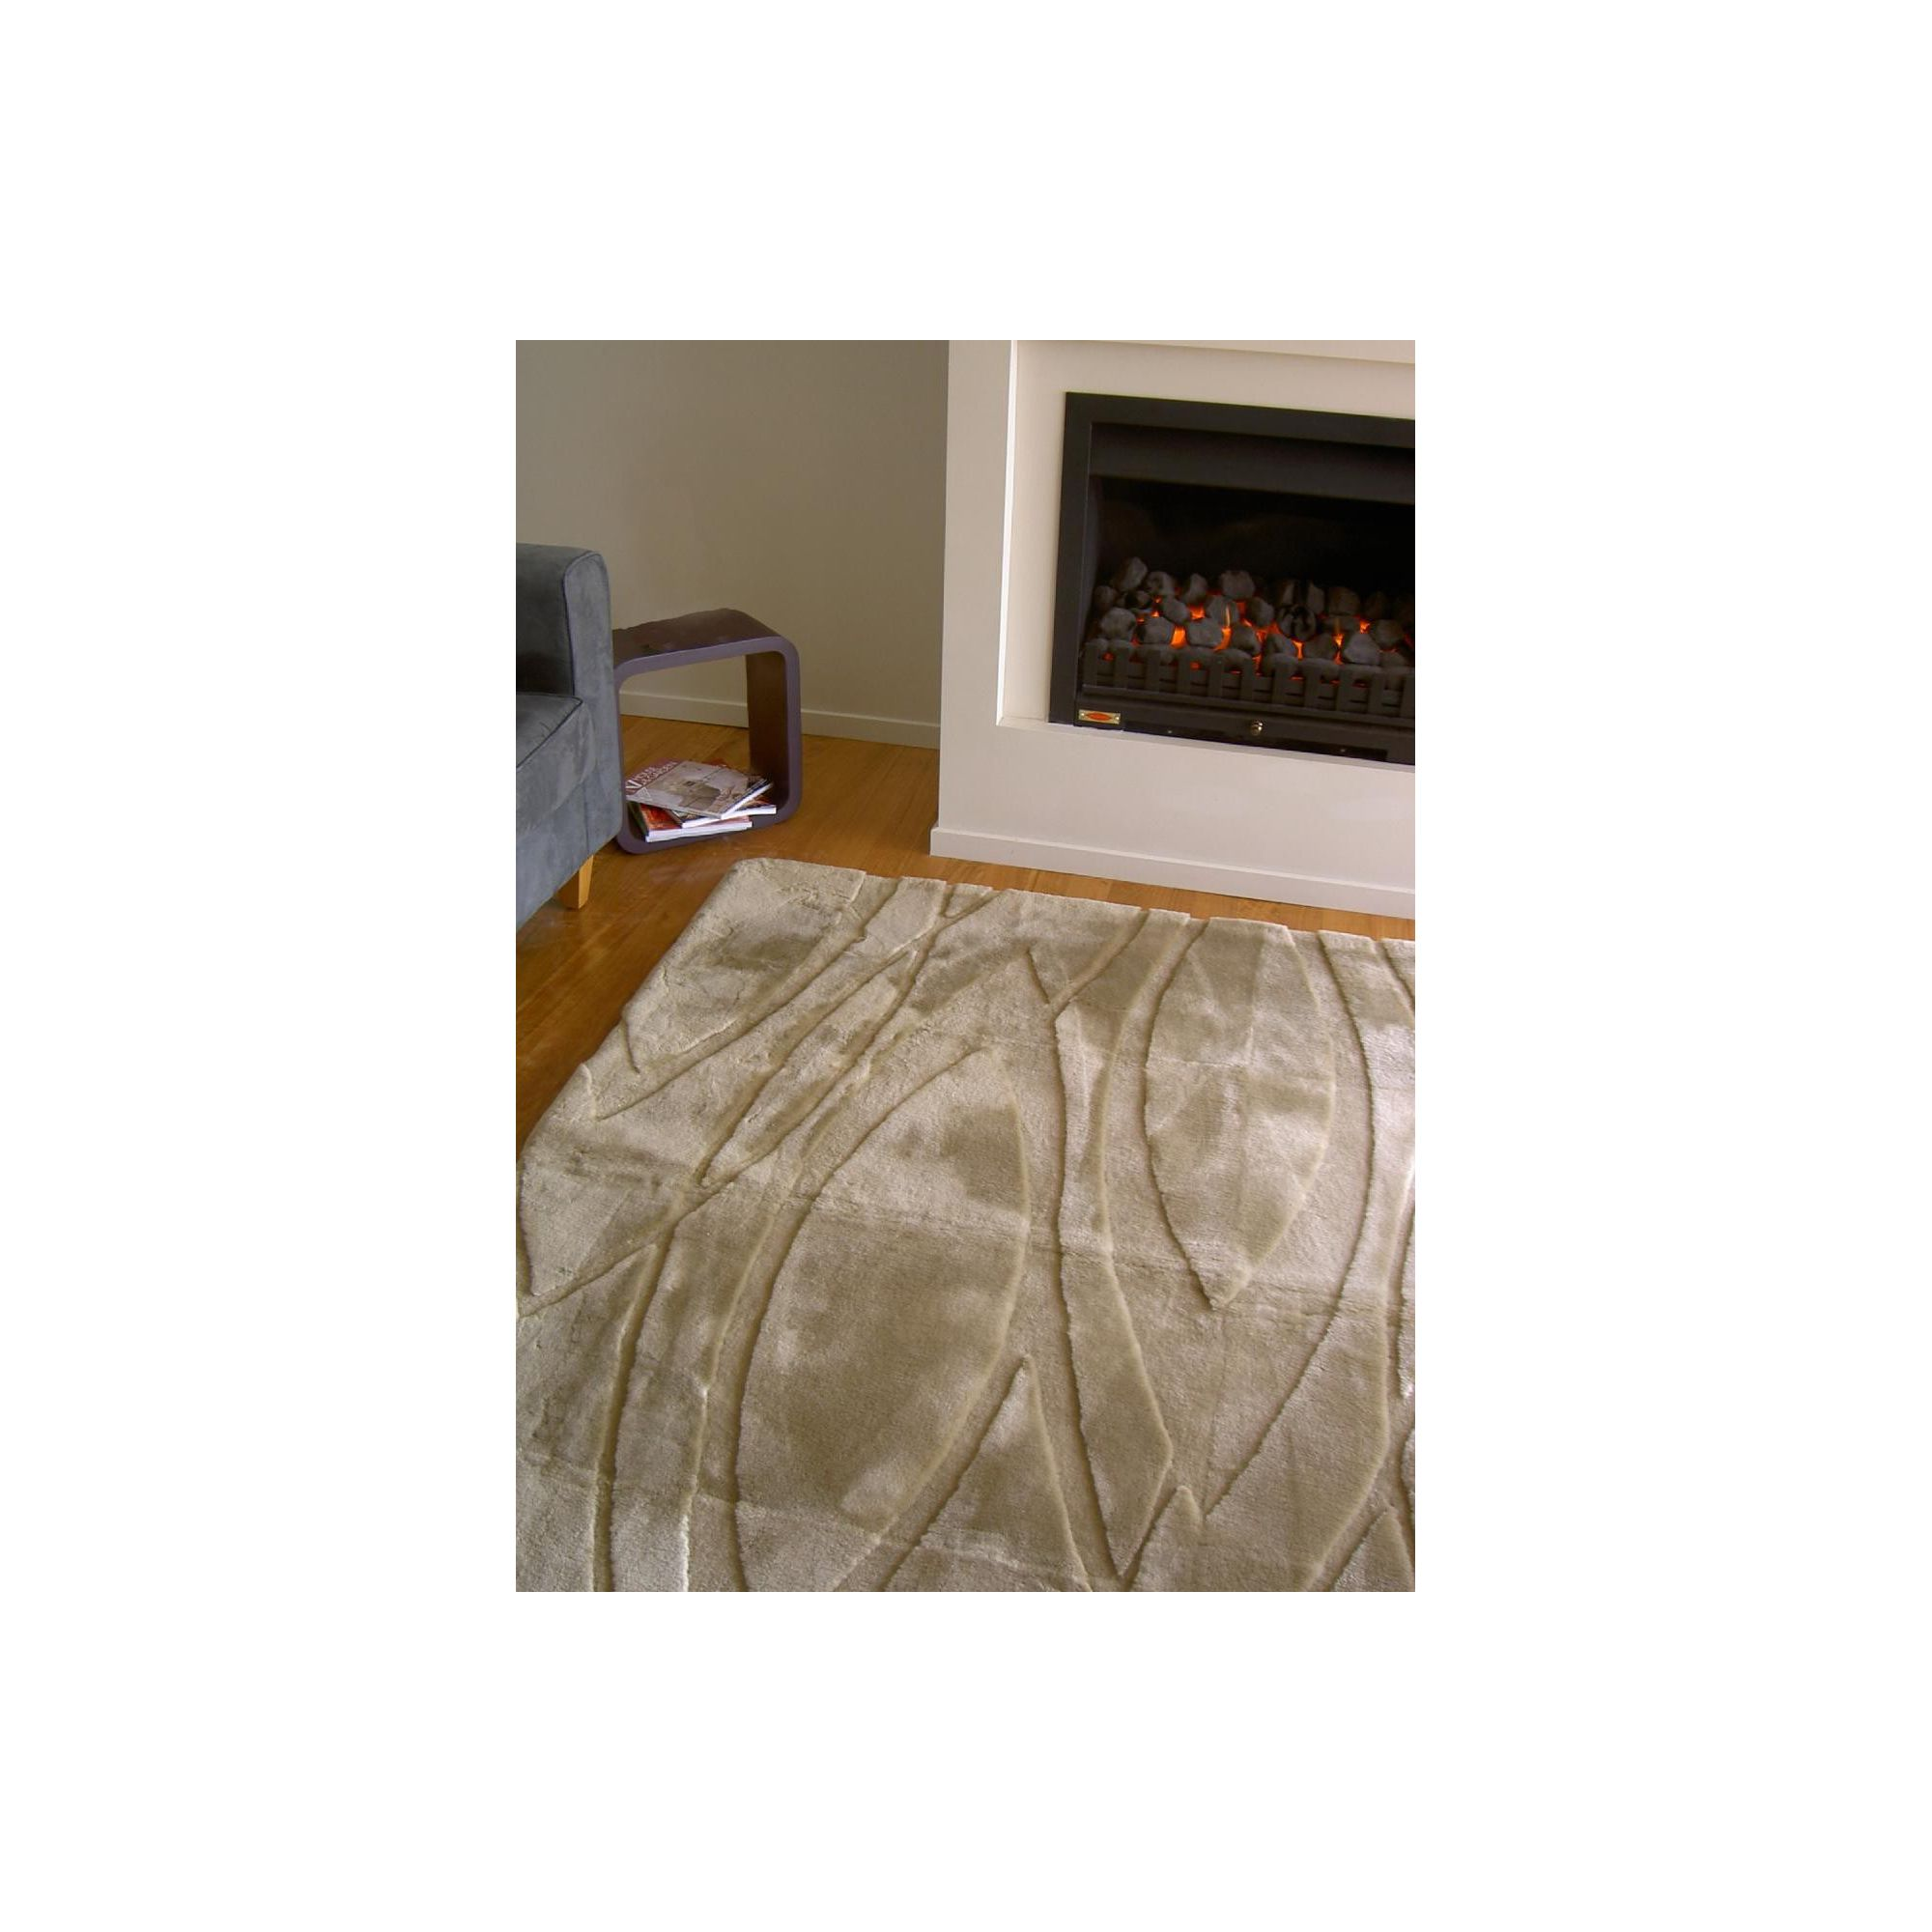 Bowron Sheepskin Shortwool Design Curves Rug - 240cm H x 170cm W x 1cm D at Tesco Direct